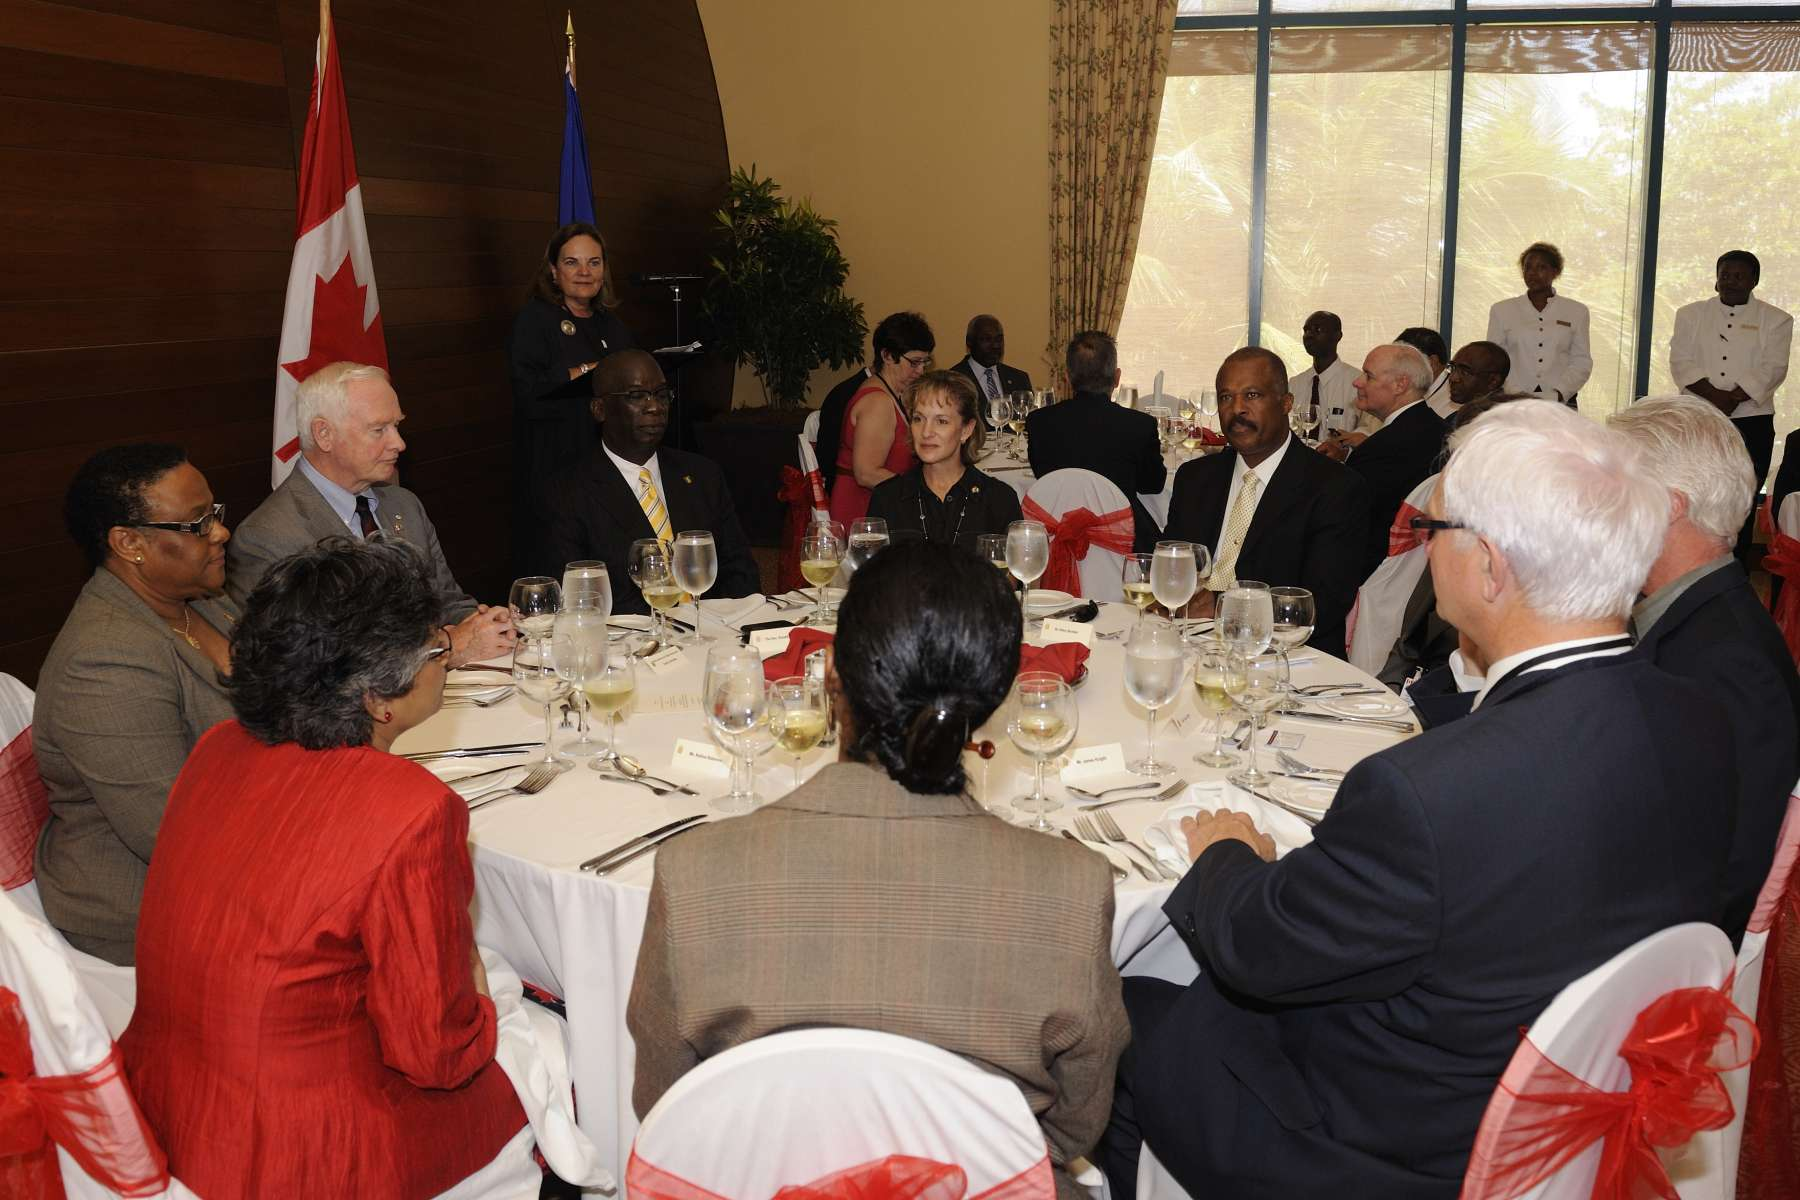 The Governor General and the Canadian delegation attended a networking lunch with government officials, as well as with Canadian and Barbadian representatives from the business, cultural and academic communities.